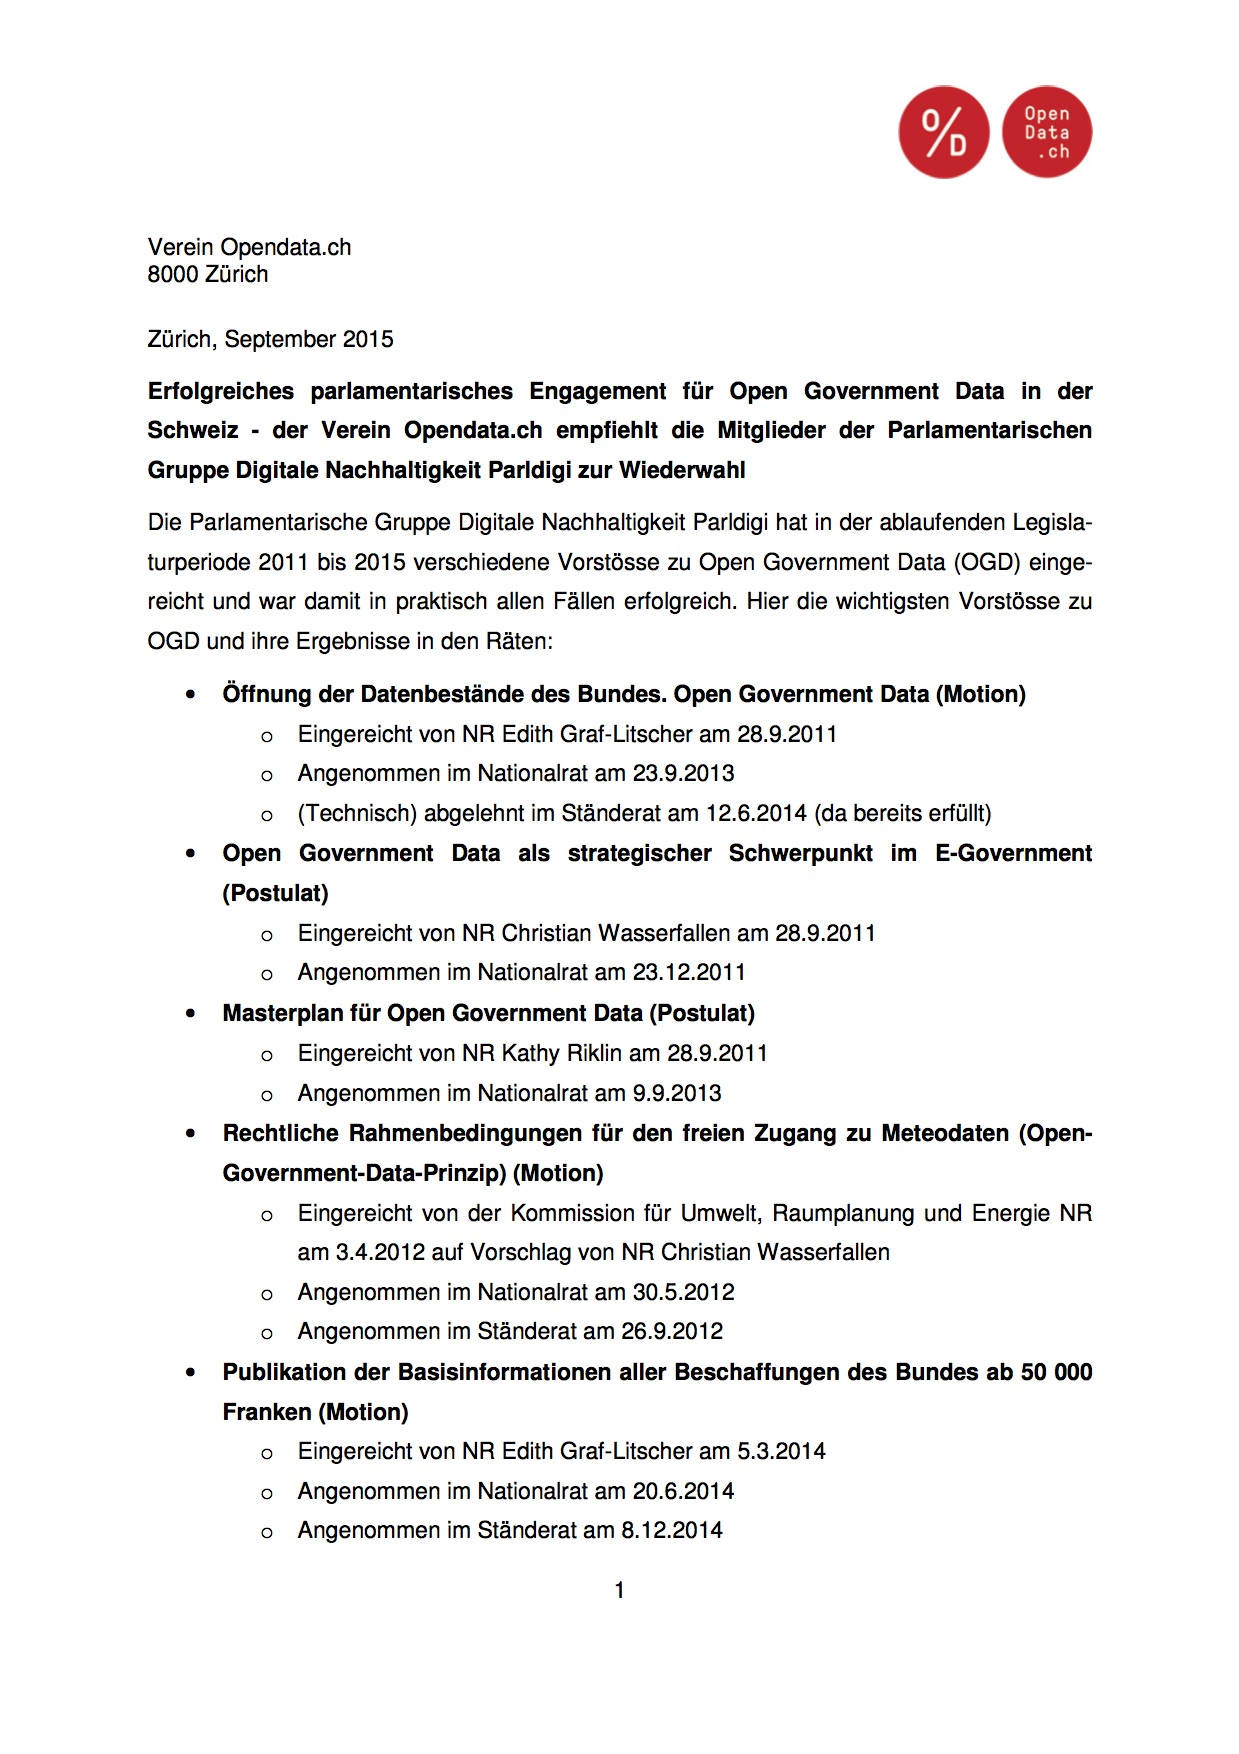 Wahlempfehlung_Opendata.ch_2015